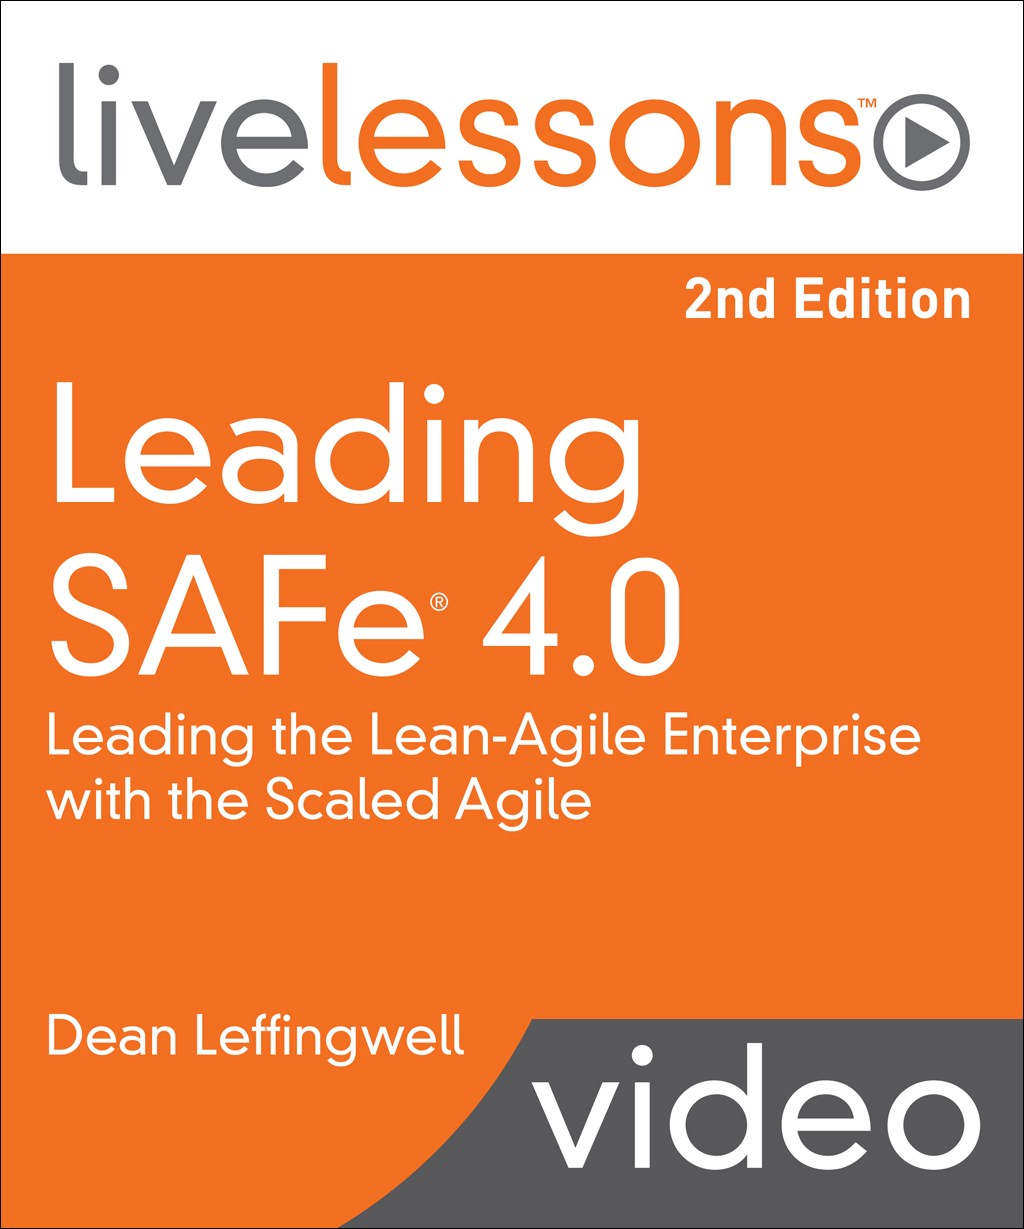 Leading SAFe (Scaled Agile Framework) 4.0 LiveLessons